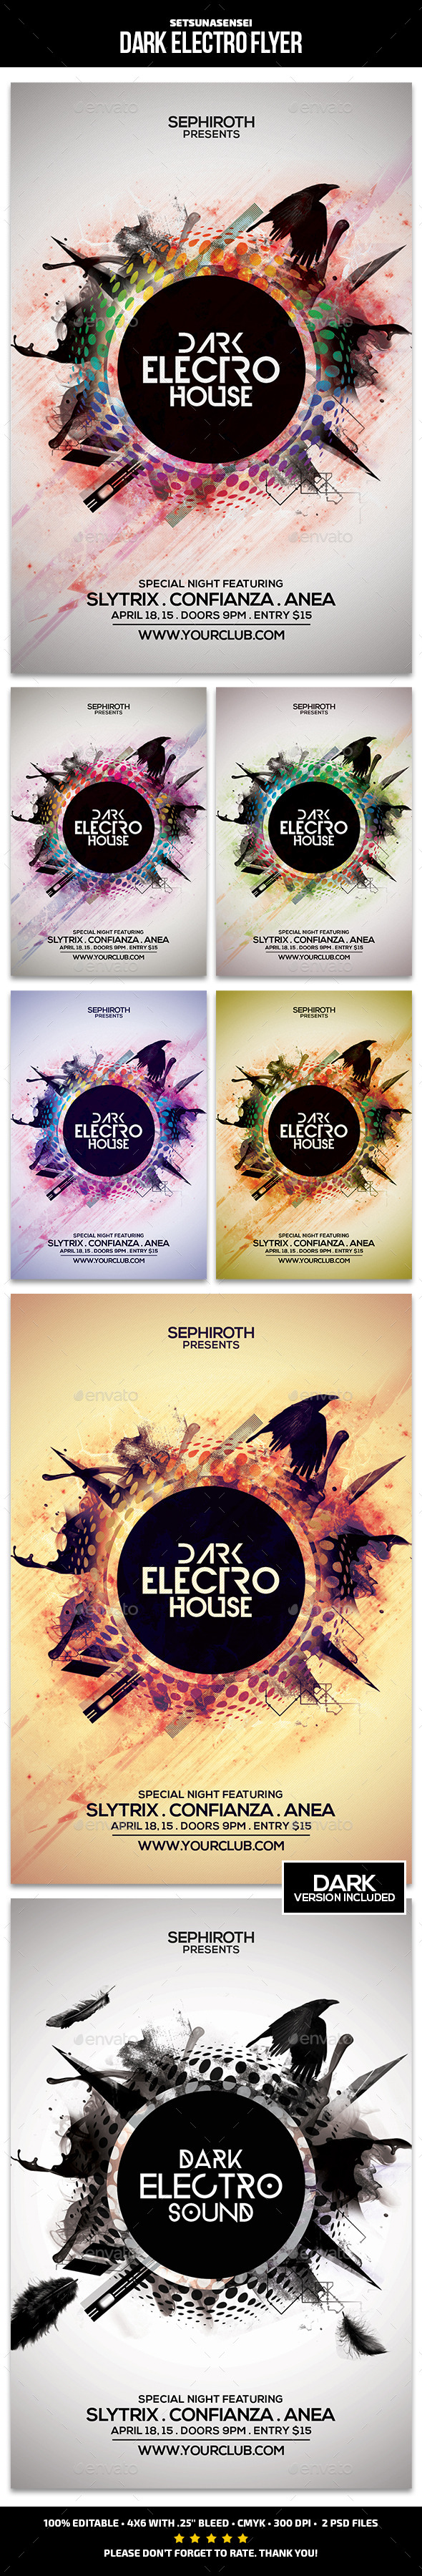 GraphicRiver Dark Electro Flyer 9822419